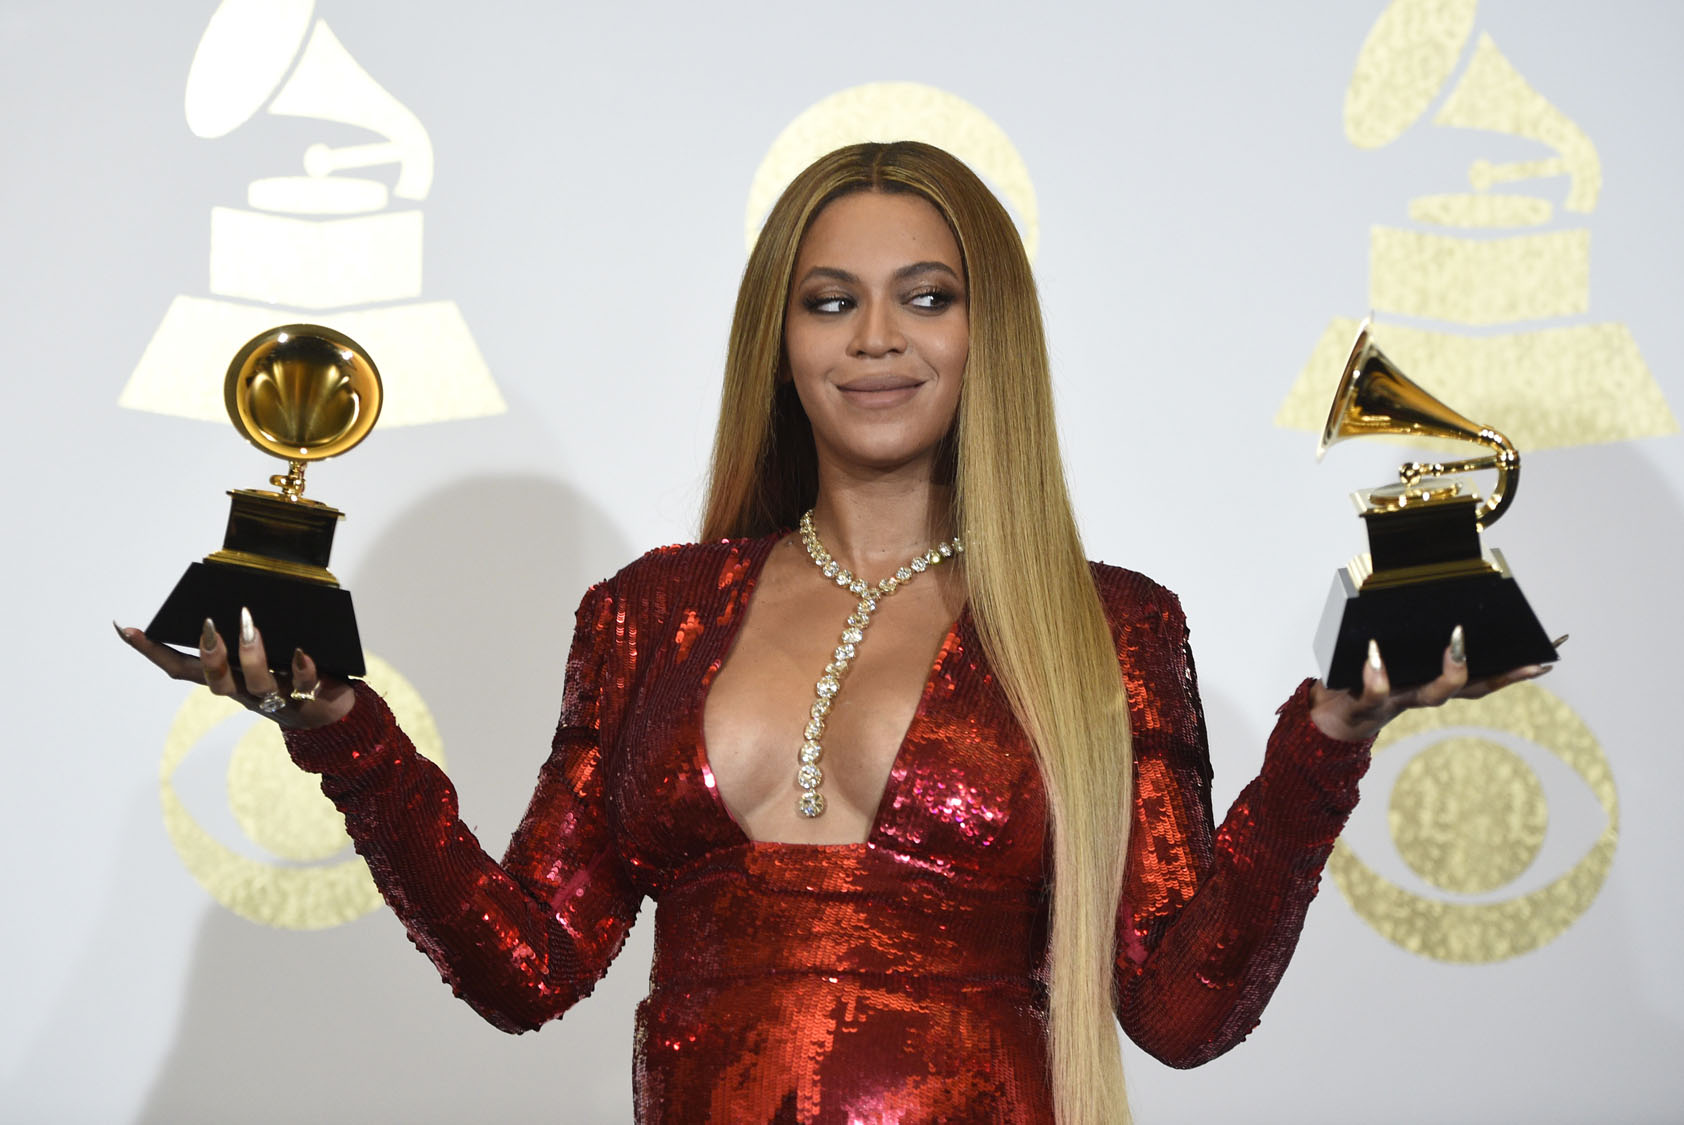 Grammy Award: Photos From The 59th Annual Grammy Awards